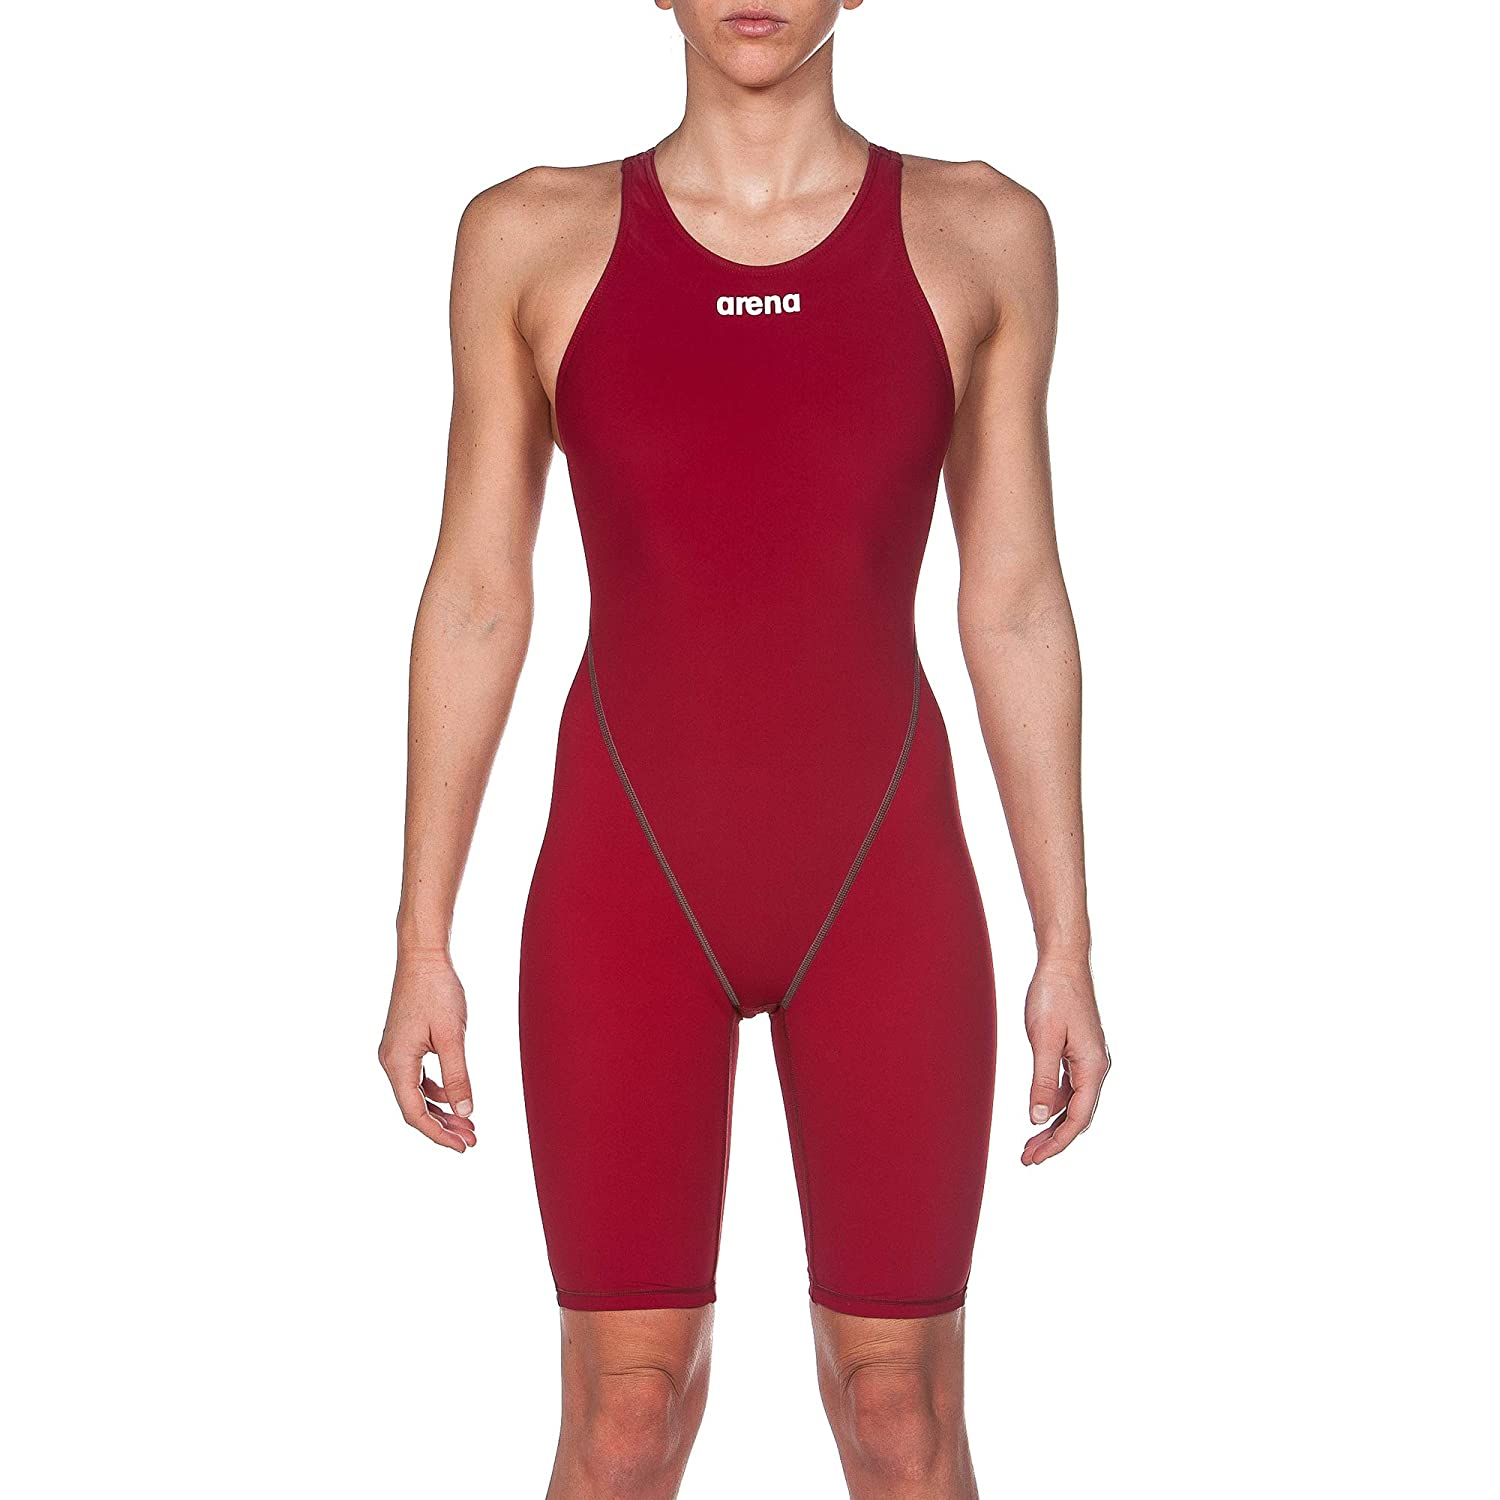 Deep Red arena Powerskin ST 2.0 Women's One Piece Open Back Racing Swimsuit